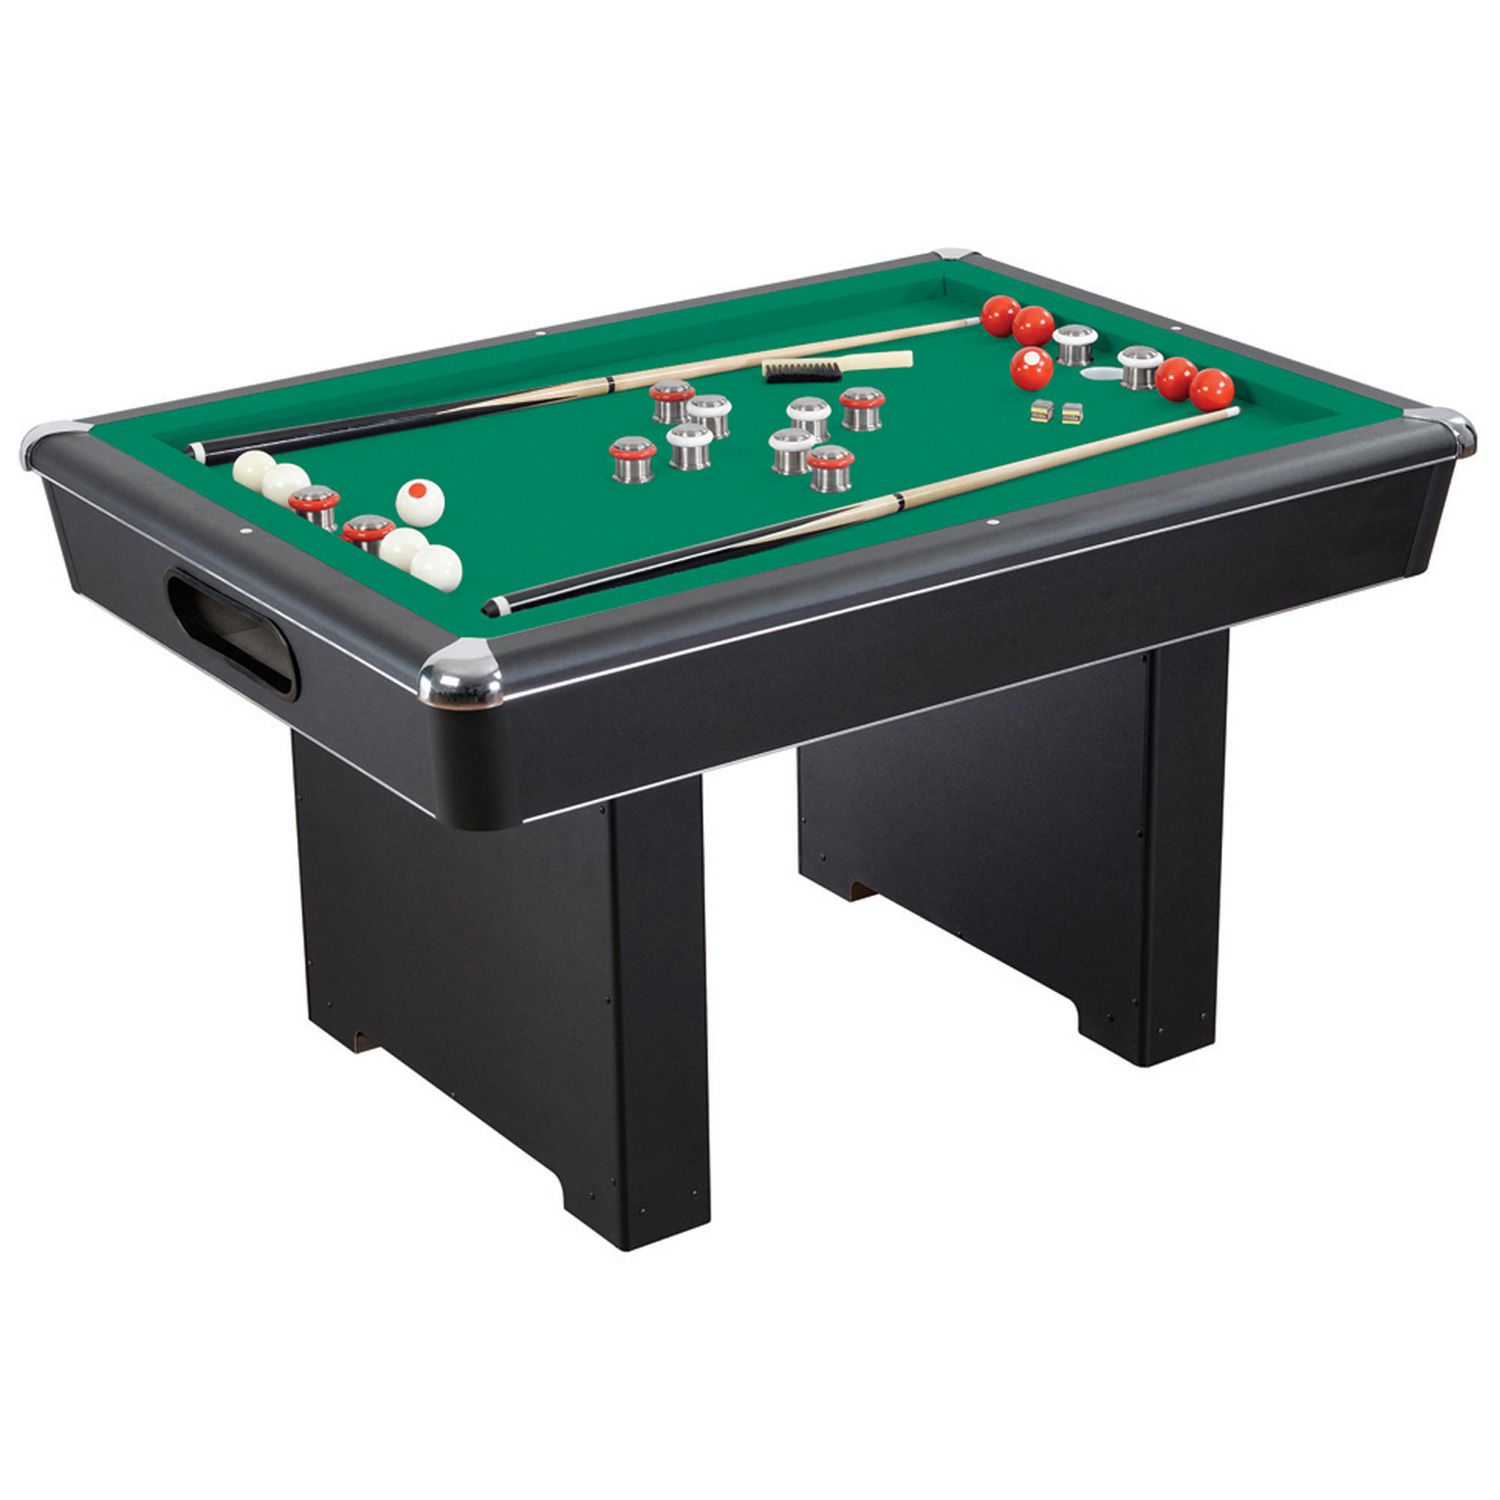 playing air multi playcraft table junior billiard pool sport and game hockey in equipment